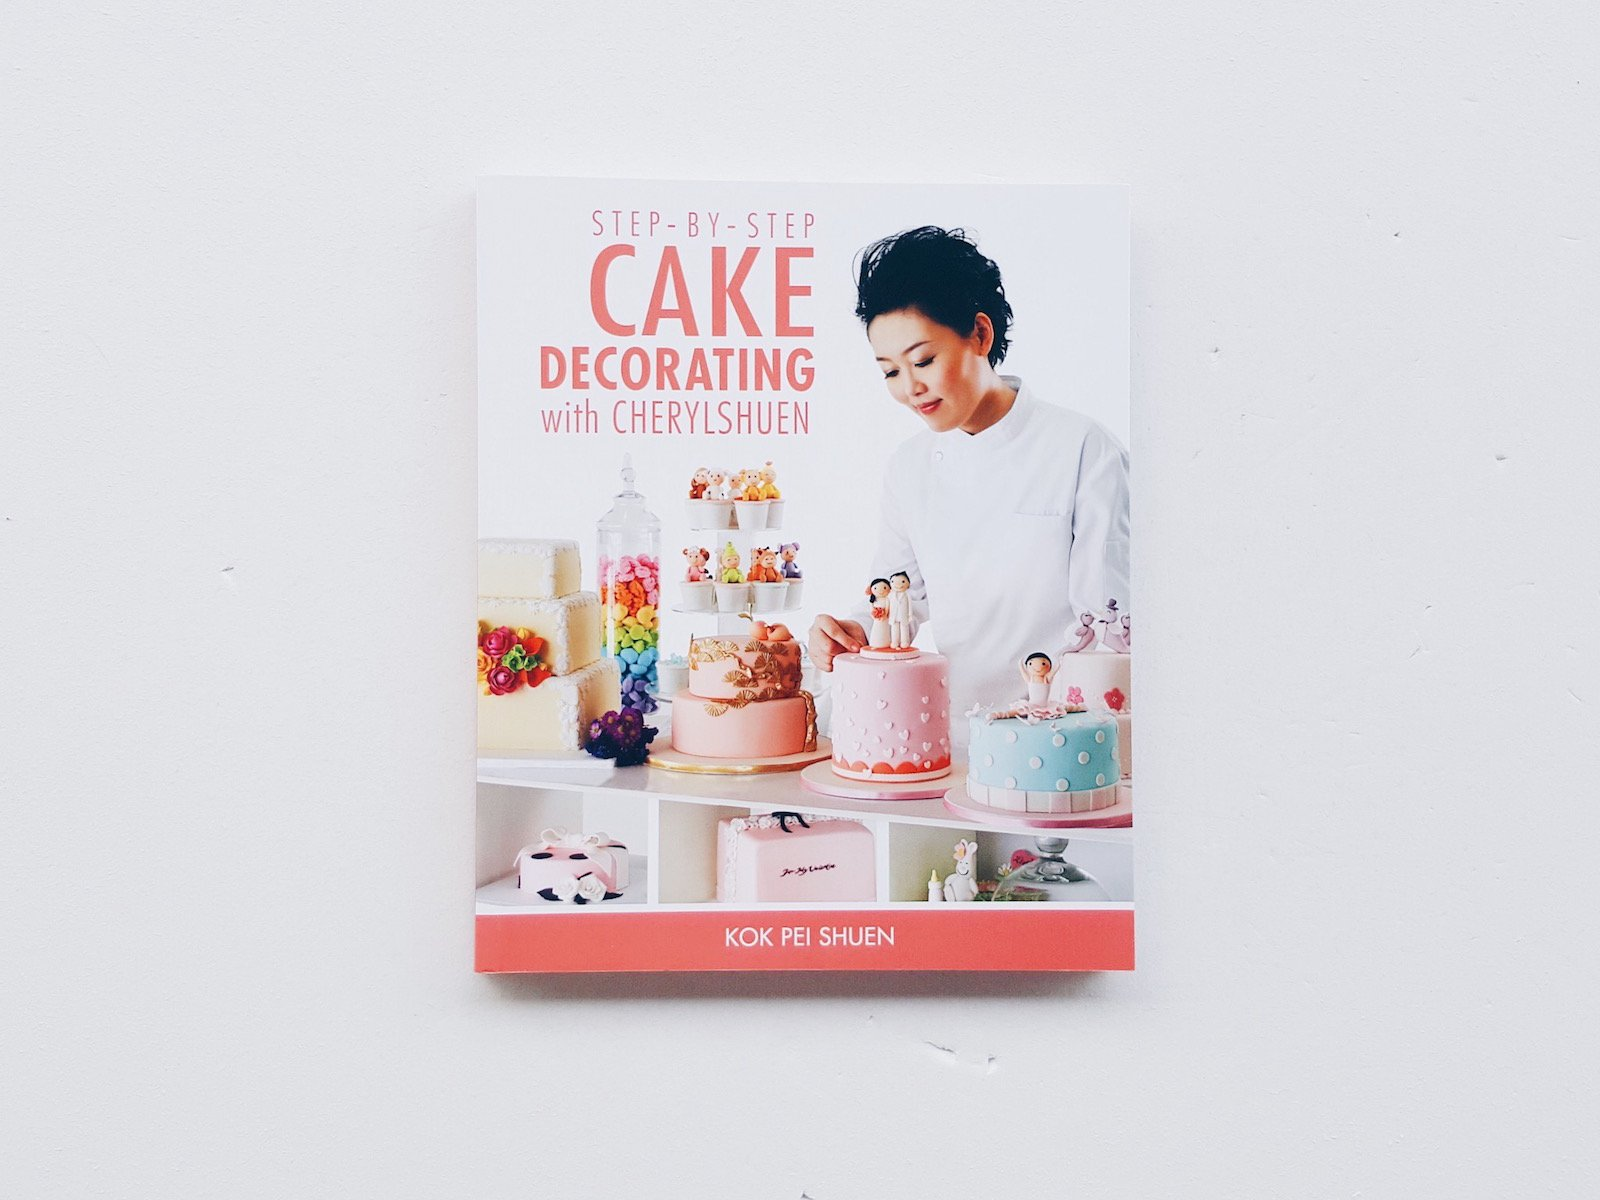 Cake Decorating With Cherylshuen